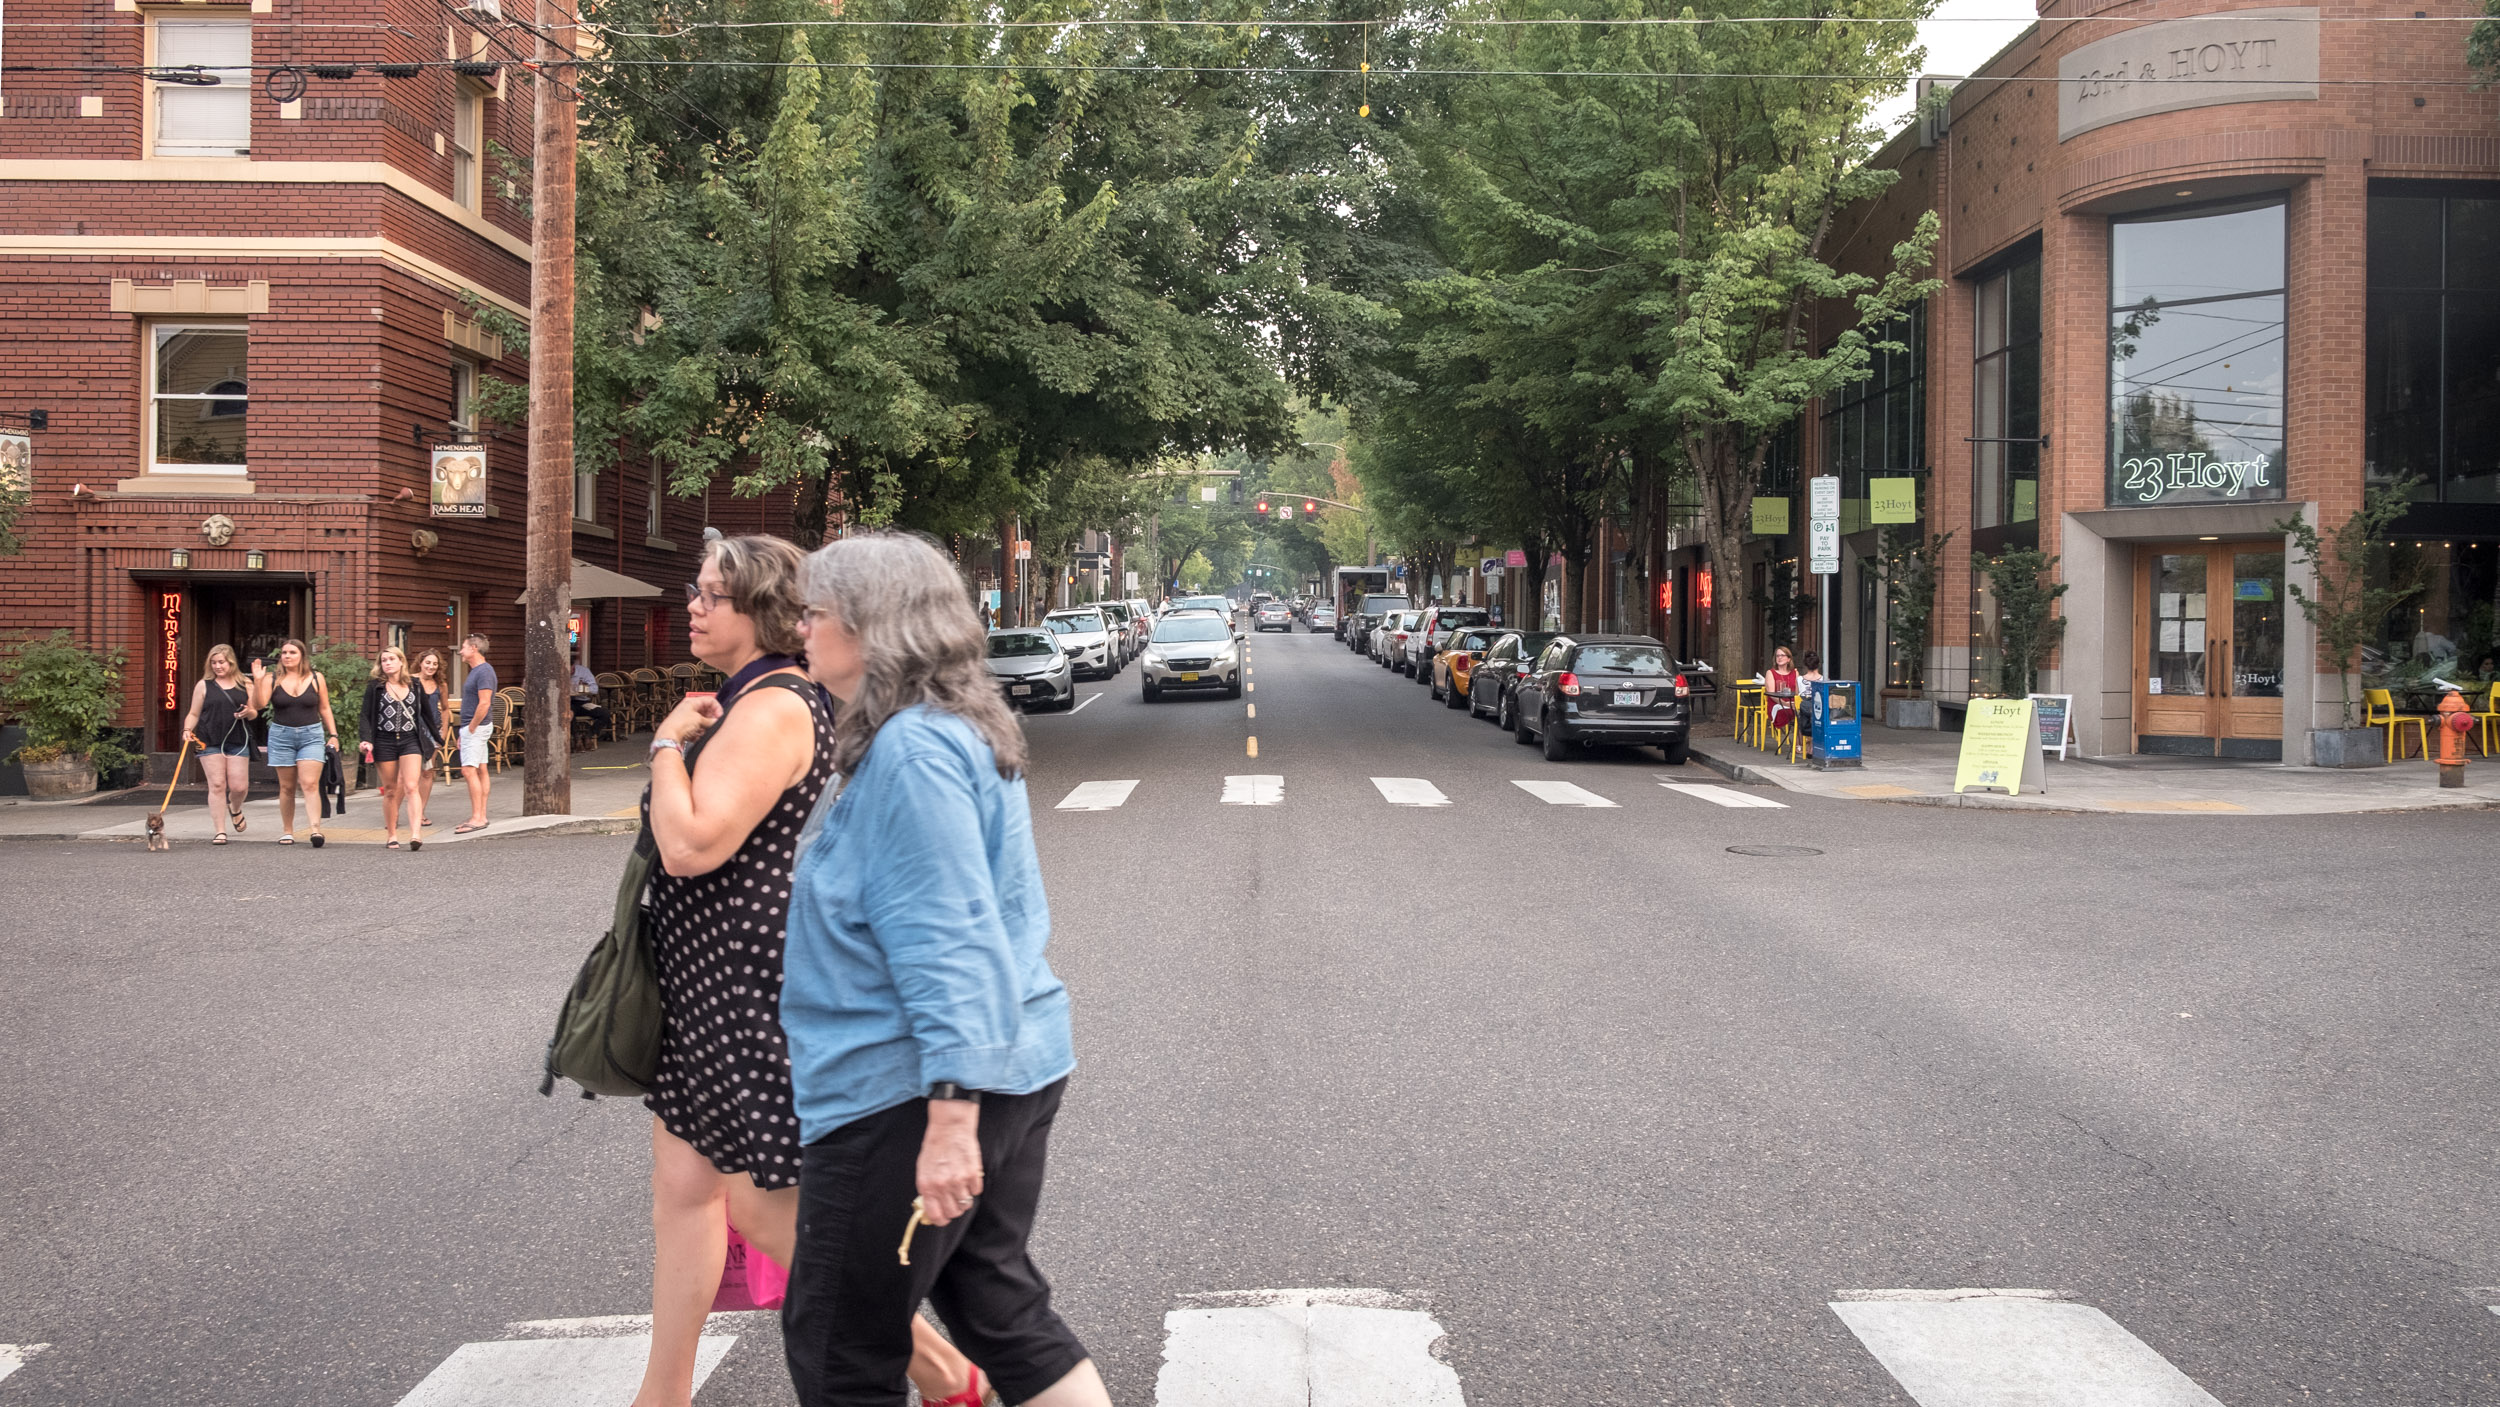 Crosswalks are nice, safe spaces for people are nicer